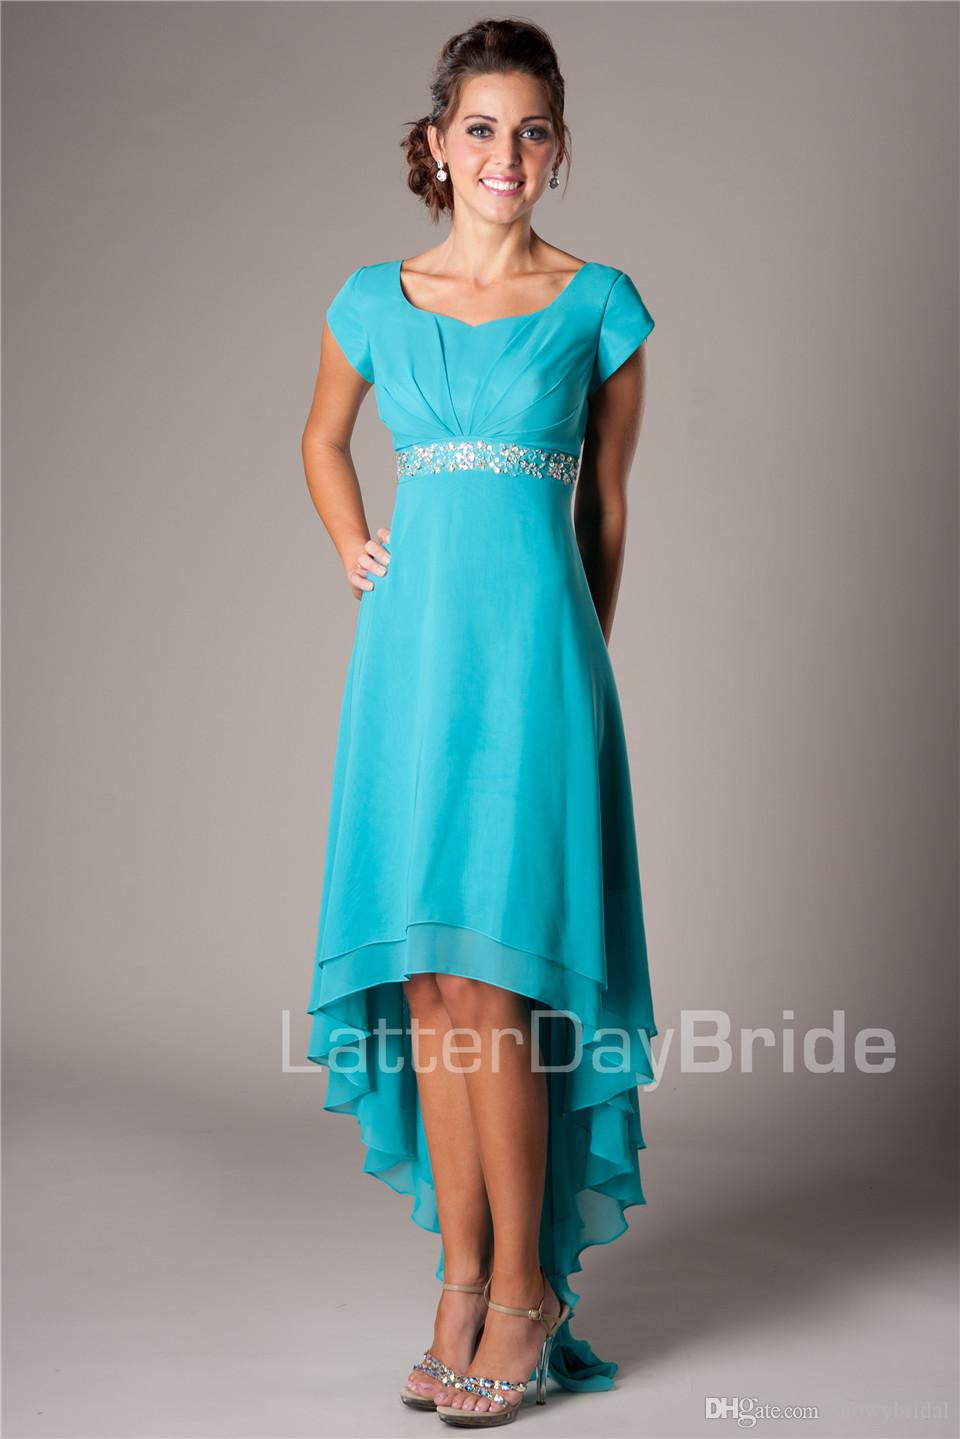 Turquoise teal high low chiffon beach modest bridesmaid dresses turquoise teal high low chiffon beach modest bridesmaid dresses short sleeves short front long back bridesmaid dress robes custom made turquoise blue ombrellifo Image collections